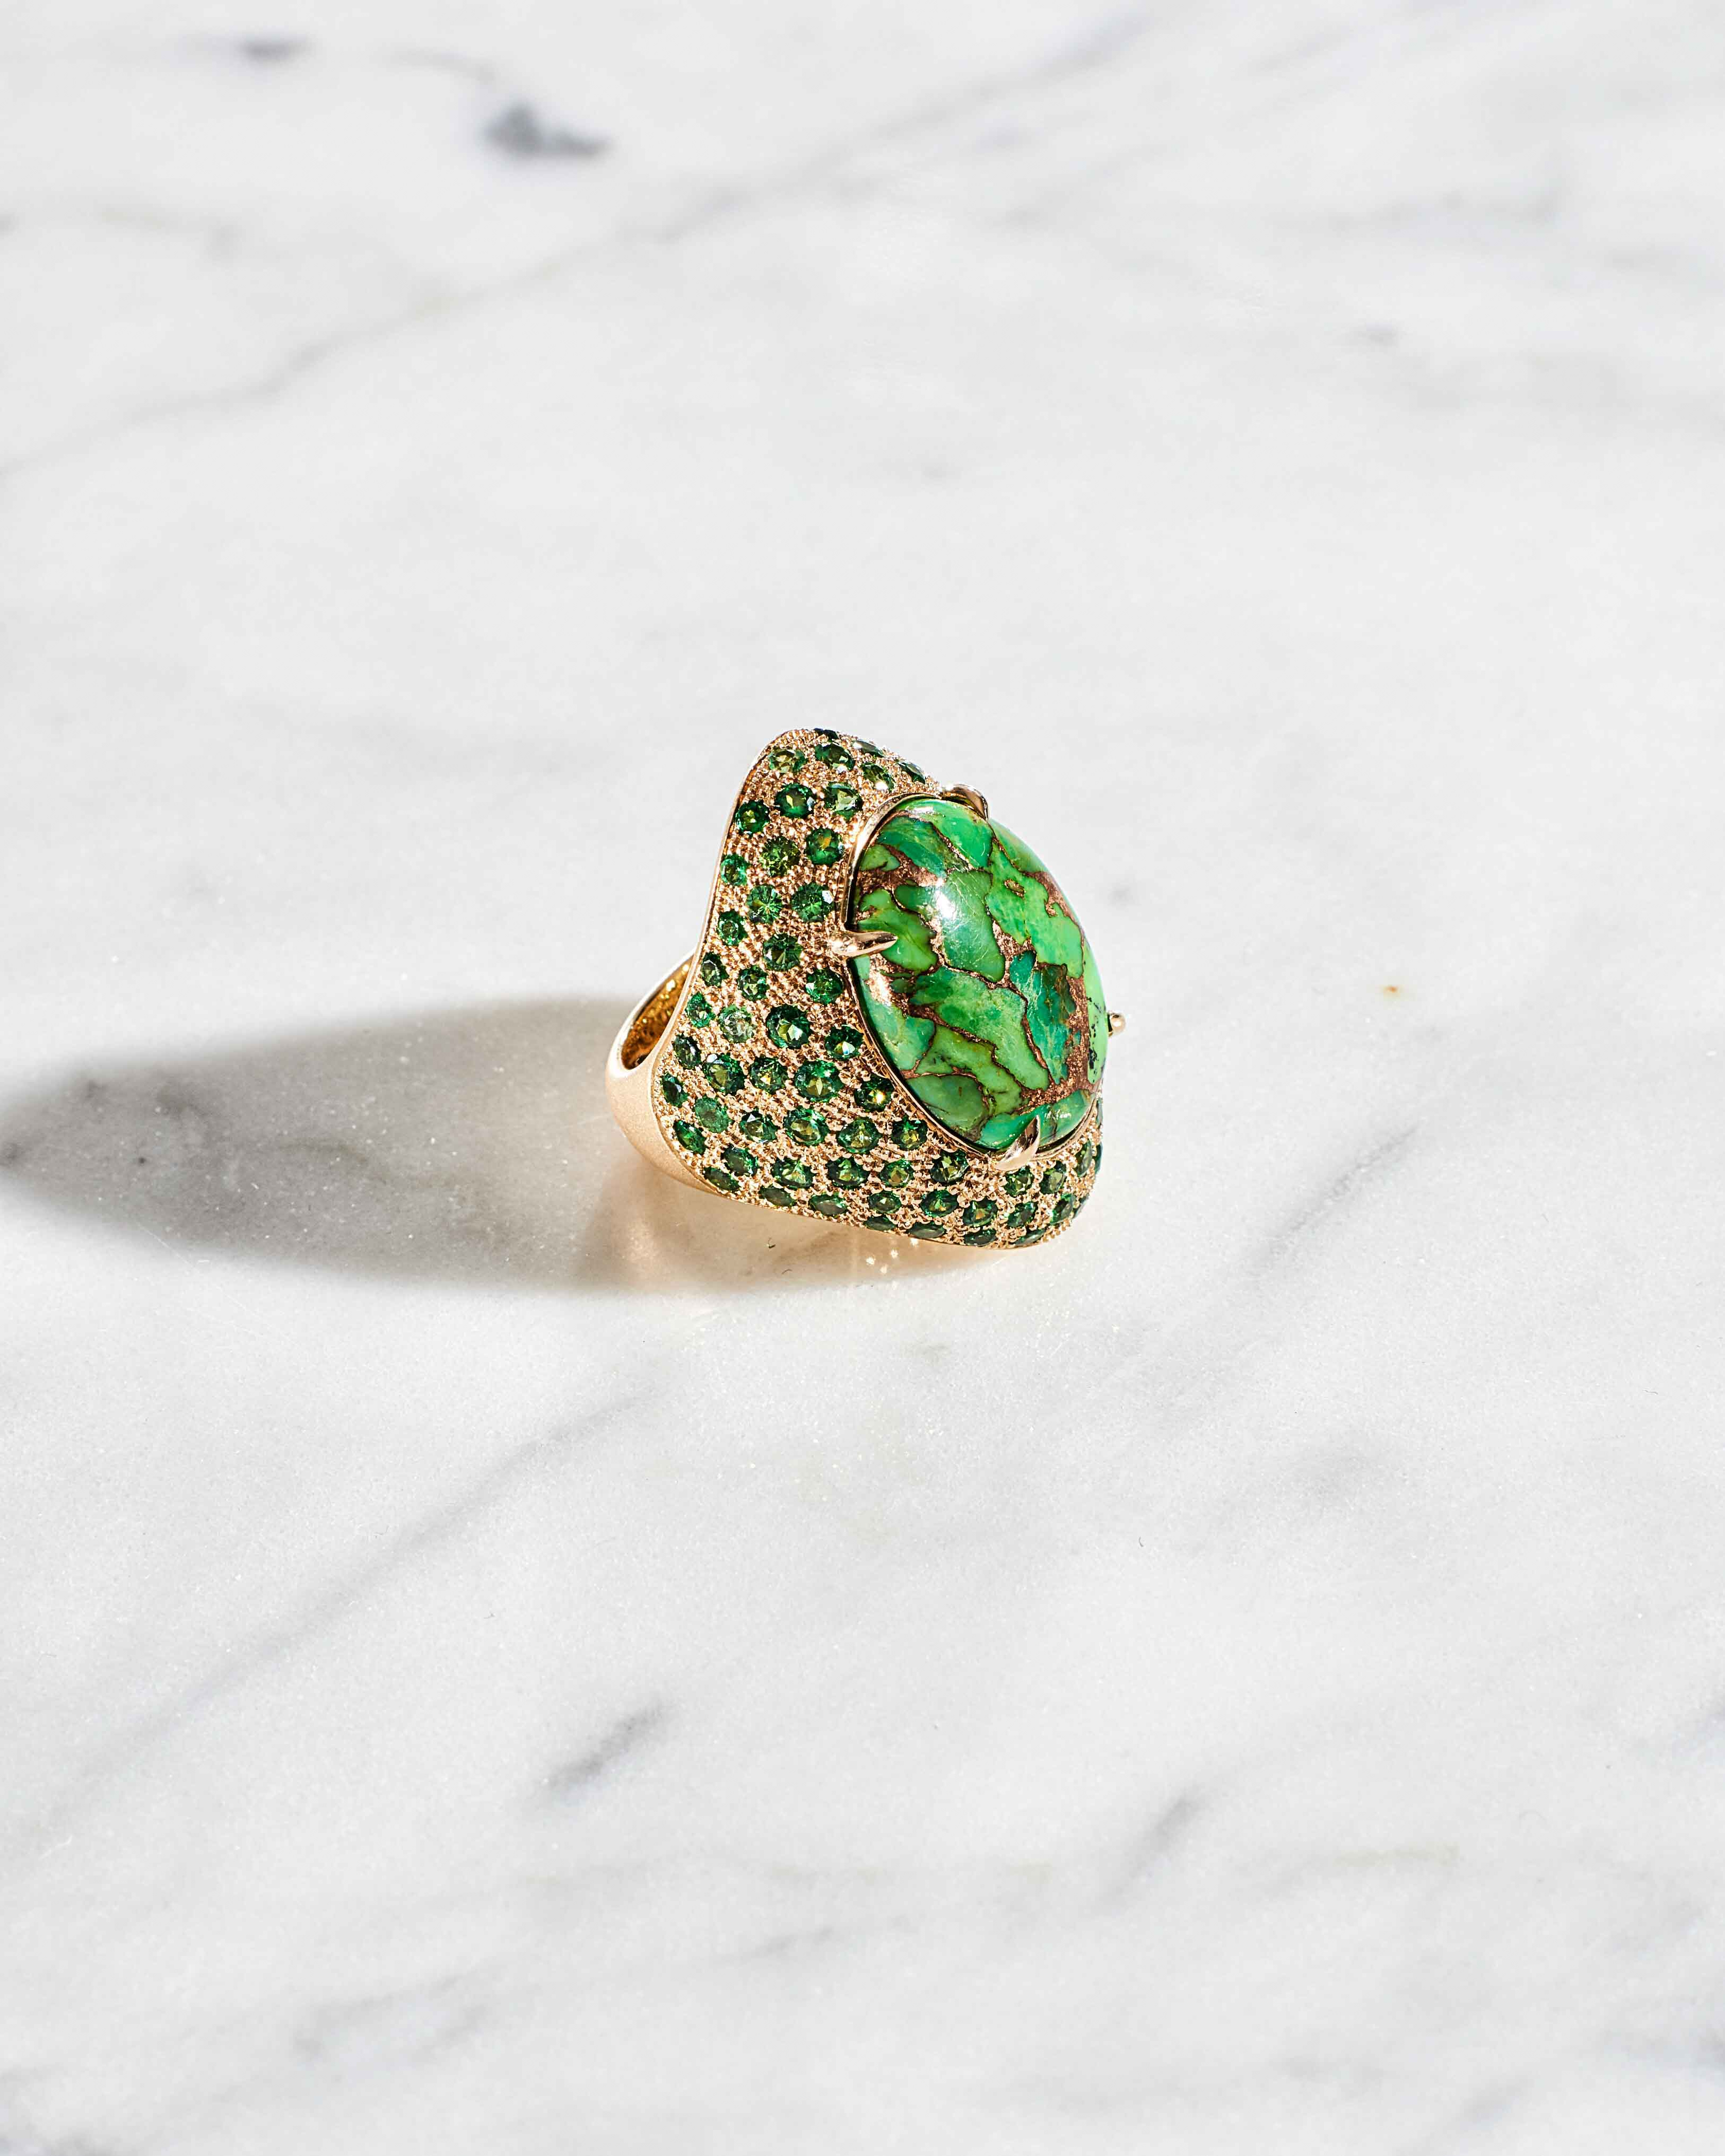 GREEN_STONE_RING_006